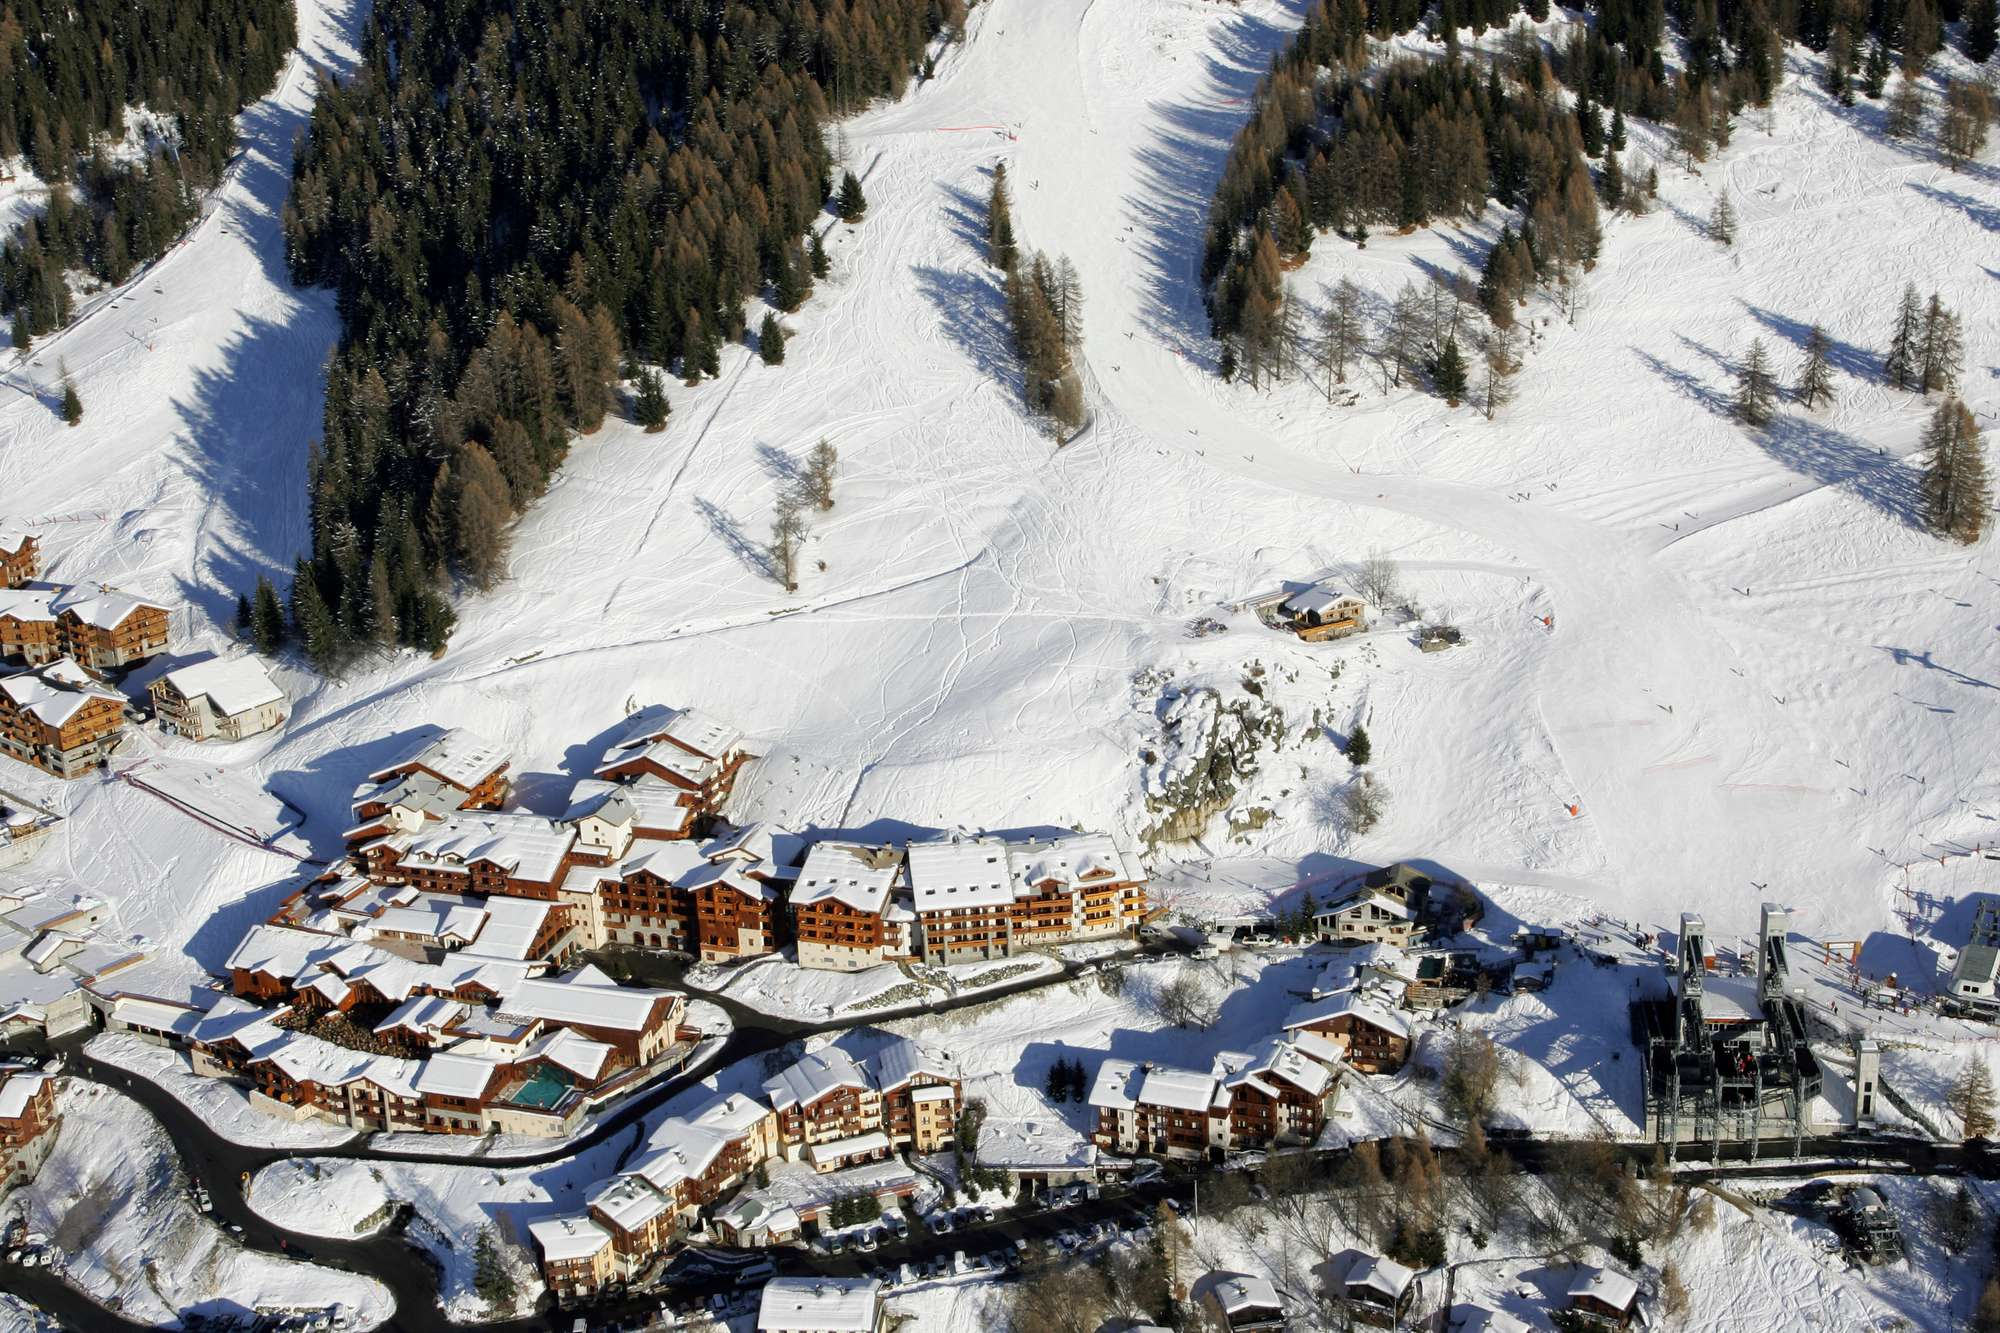 https___ns.clubmed.com_icp_1-MEDIA_01.VILLAGES_1.3MONTAGNE_PEISEY-VALLANDRY_17-16-15-14-13-12-11-10-